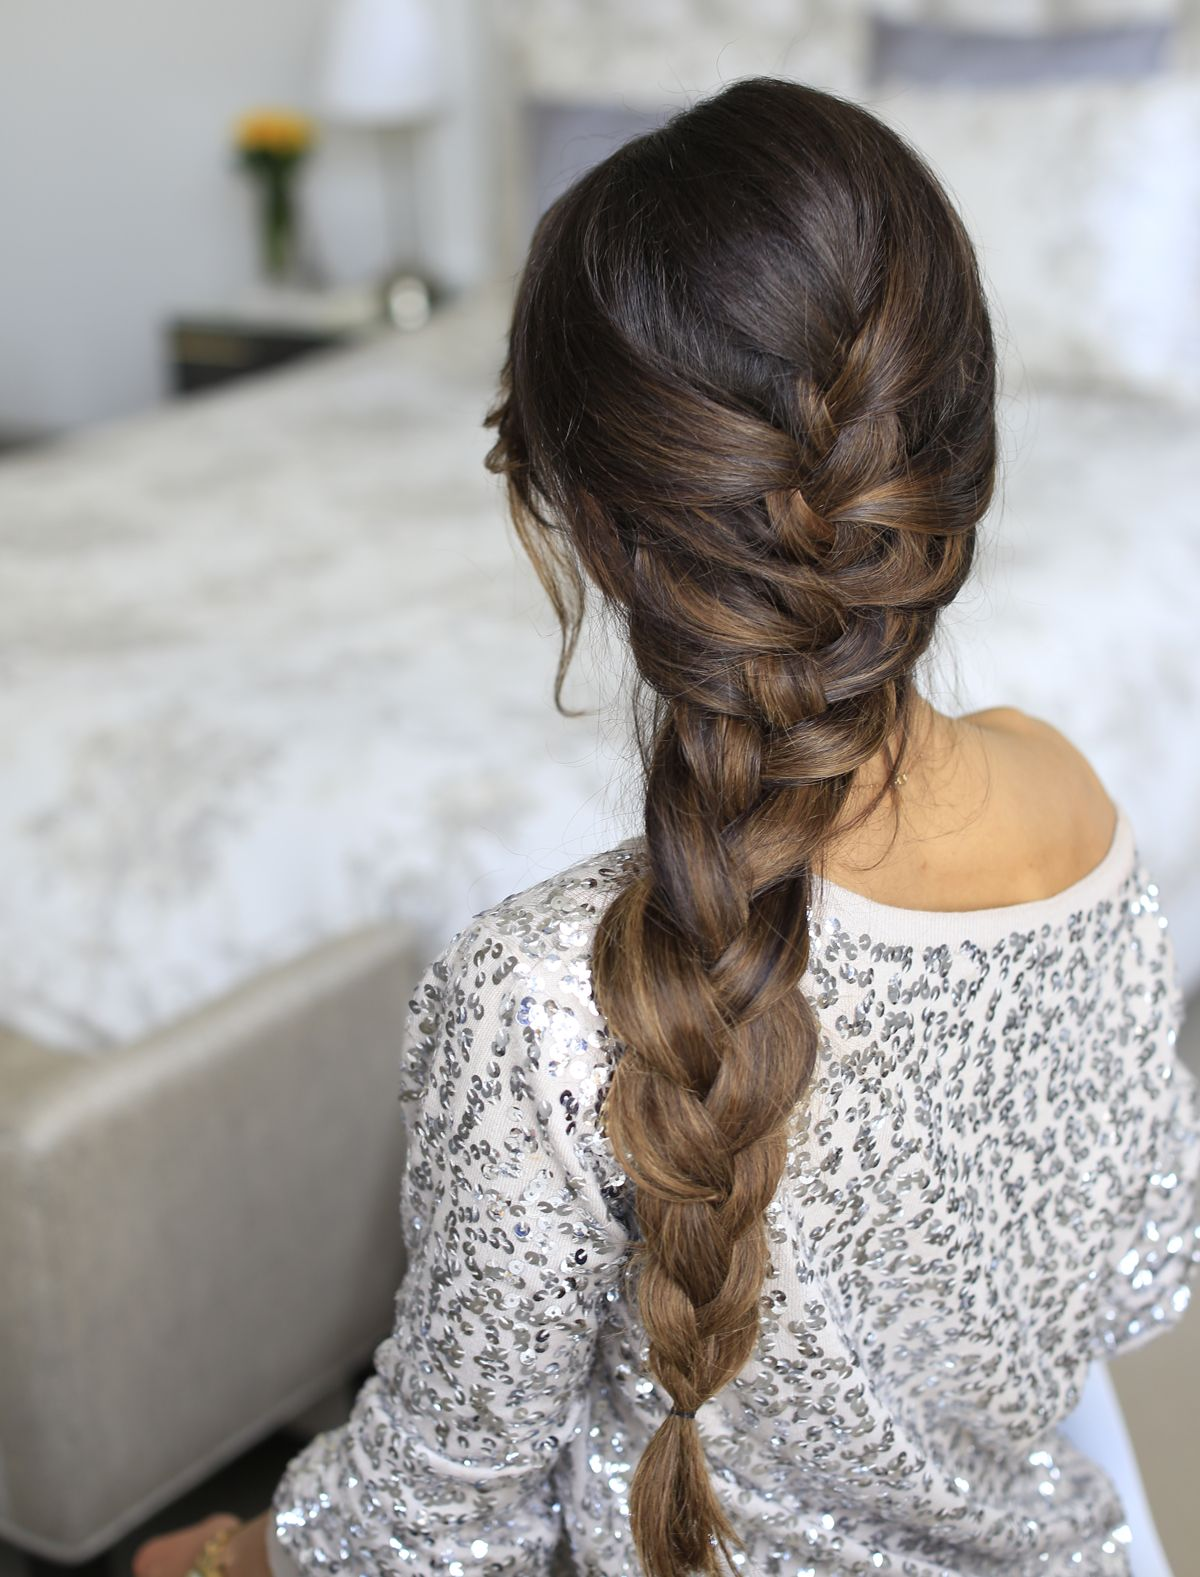 Frozen Queen Elsa Braid created with Ombre Chestnut Luxy Hair Extensions. Click to learn how to create this thick voluminous effortless braid! #LuxyHairExtensions